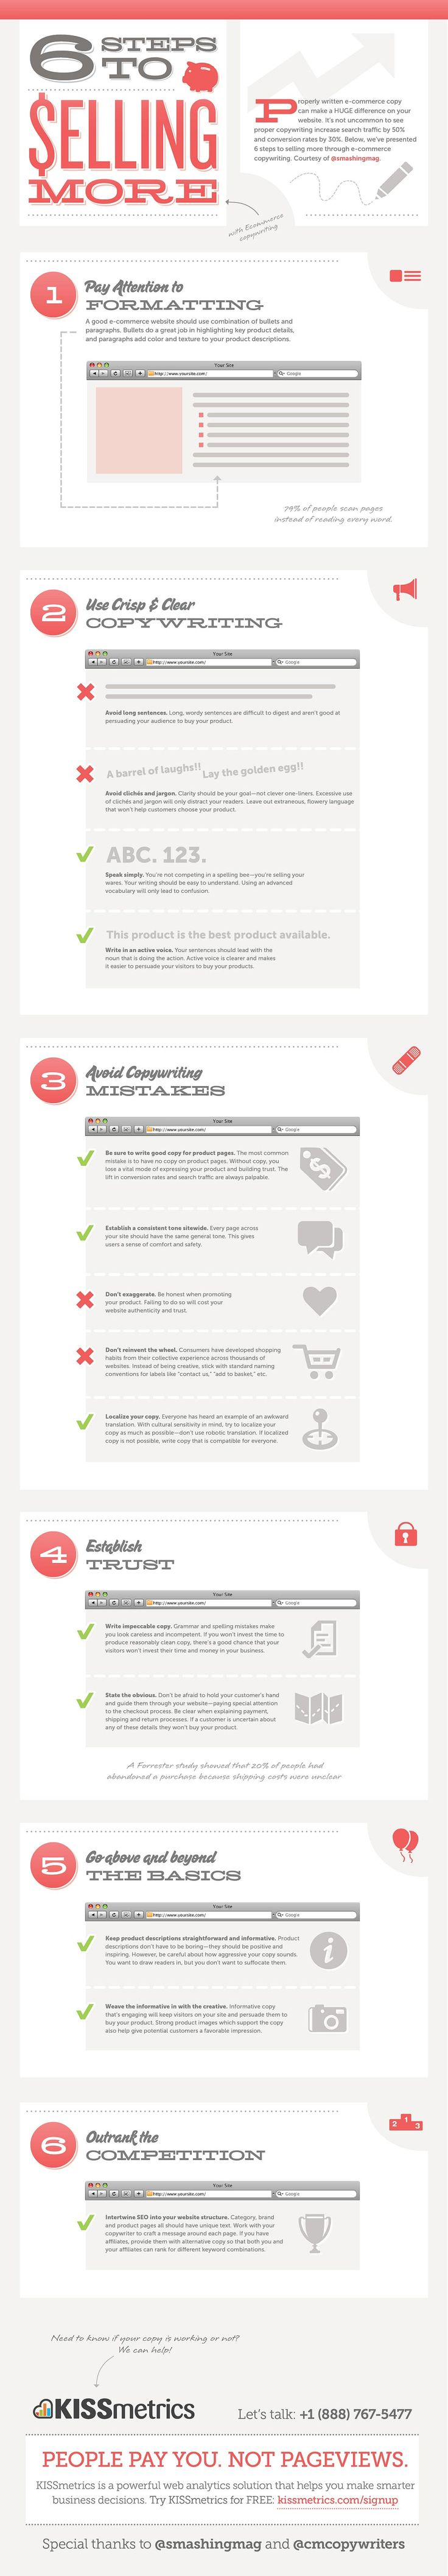 CATEGORY: e-Commerce Copywriting   TITLE: 6 Steps to Selling More   DESCRIPTION: Properly written e-commerce copy can make a HUGE difference on your website. It's not uncommon to see proper copywriting increase search traffic by 50% and conversion rates by 30%. The infographic below highlights 6 steps to selling more through e-commerce copywriting.